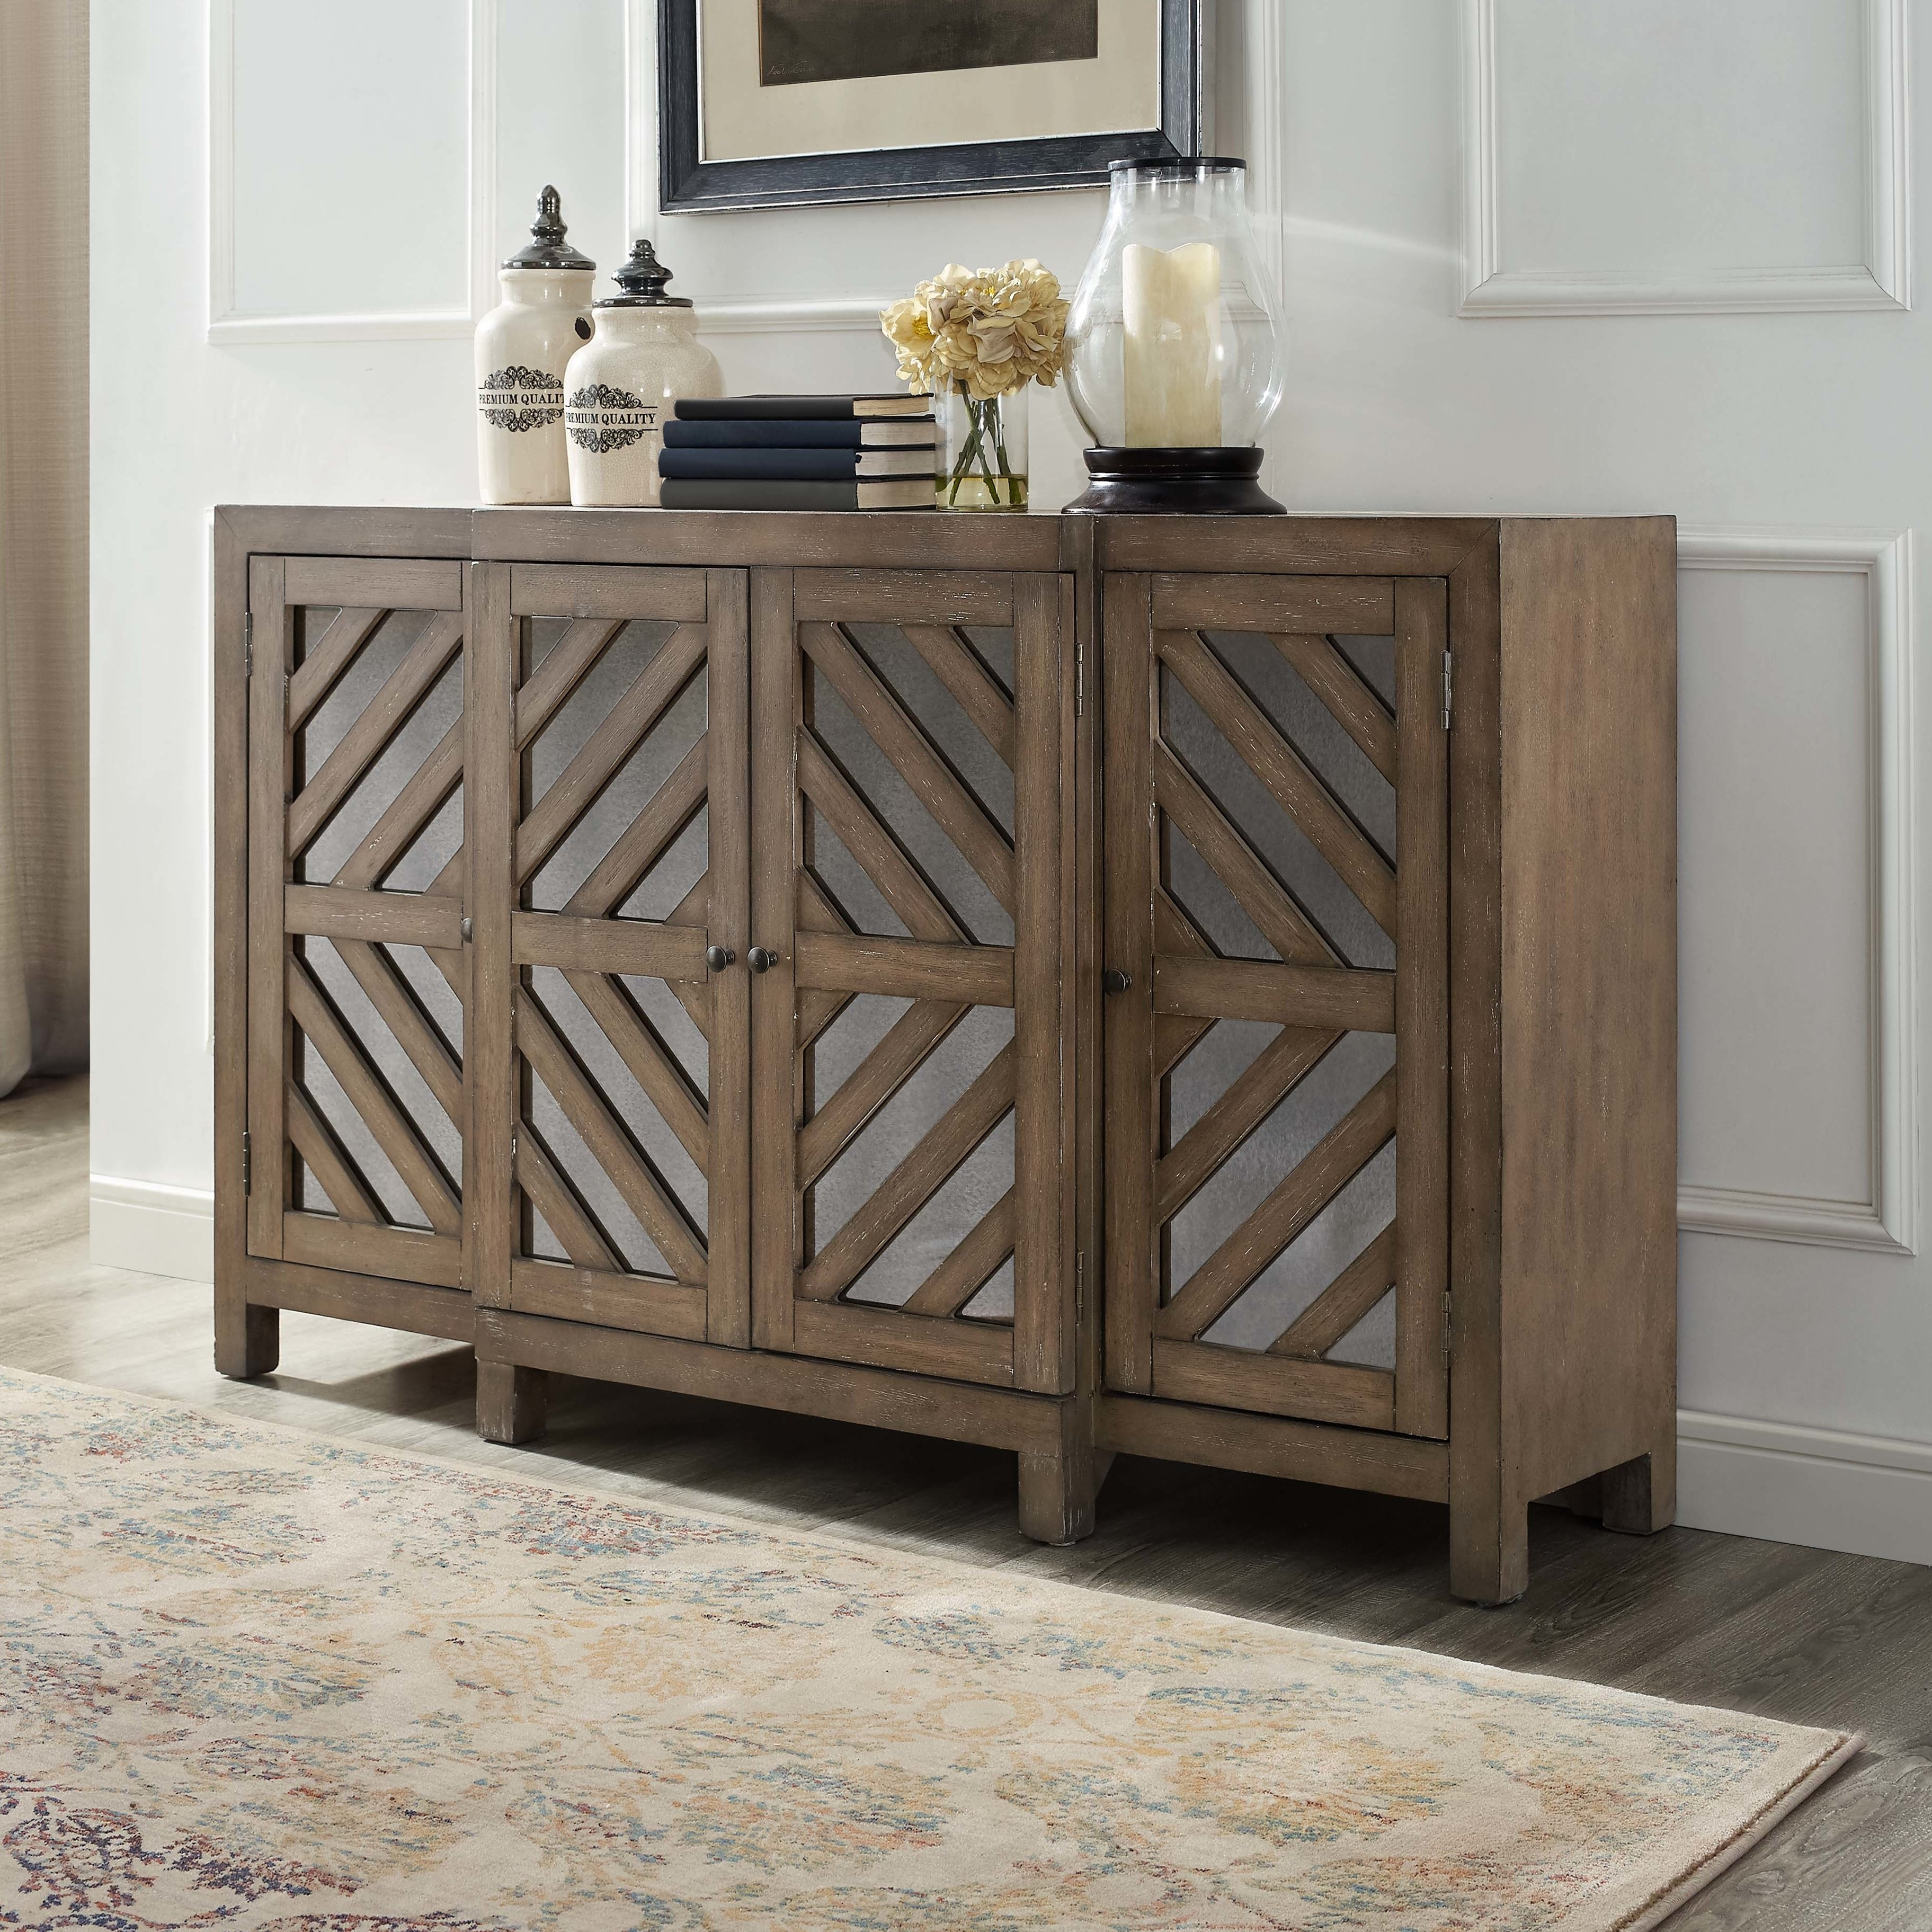 Inspiration about Union Rustic Lowrey 4 Door Credenza & Reviews | Wayfair Intended For Recent Vintage Finish 4 Door Sideboards (#6 of 20)